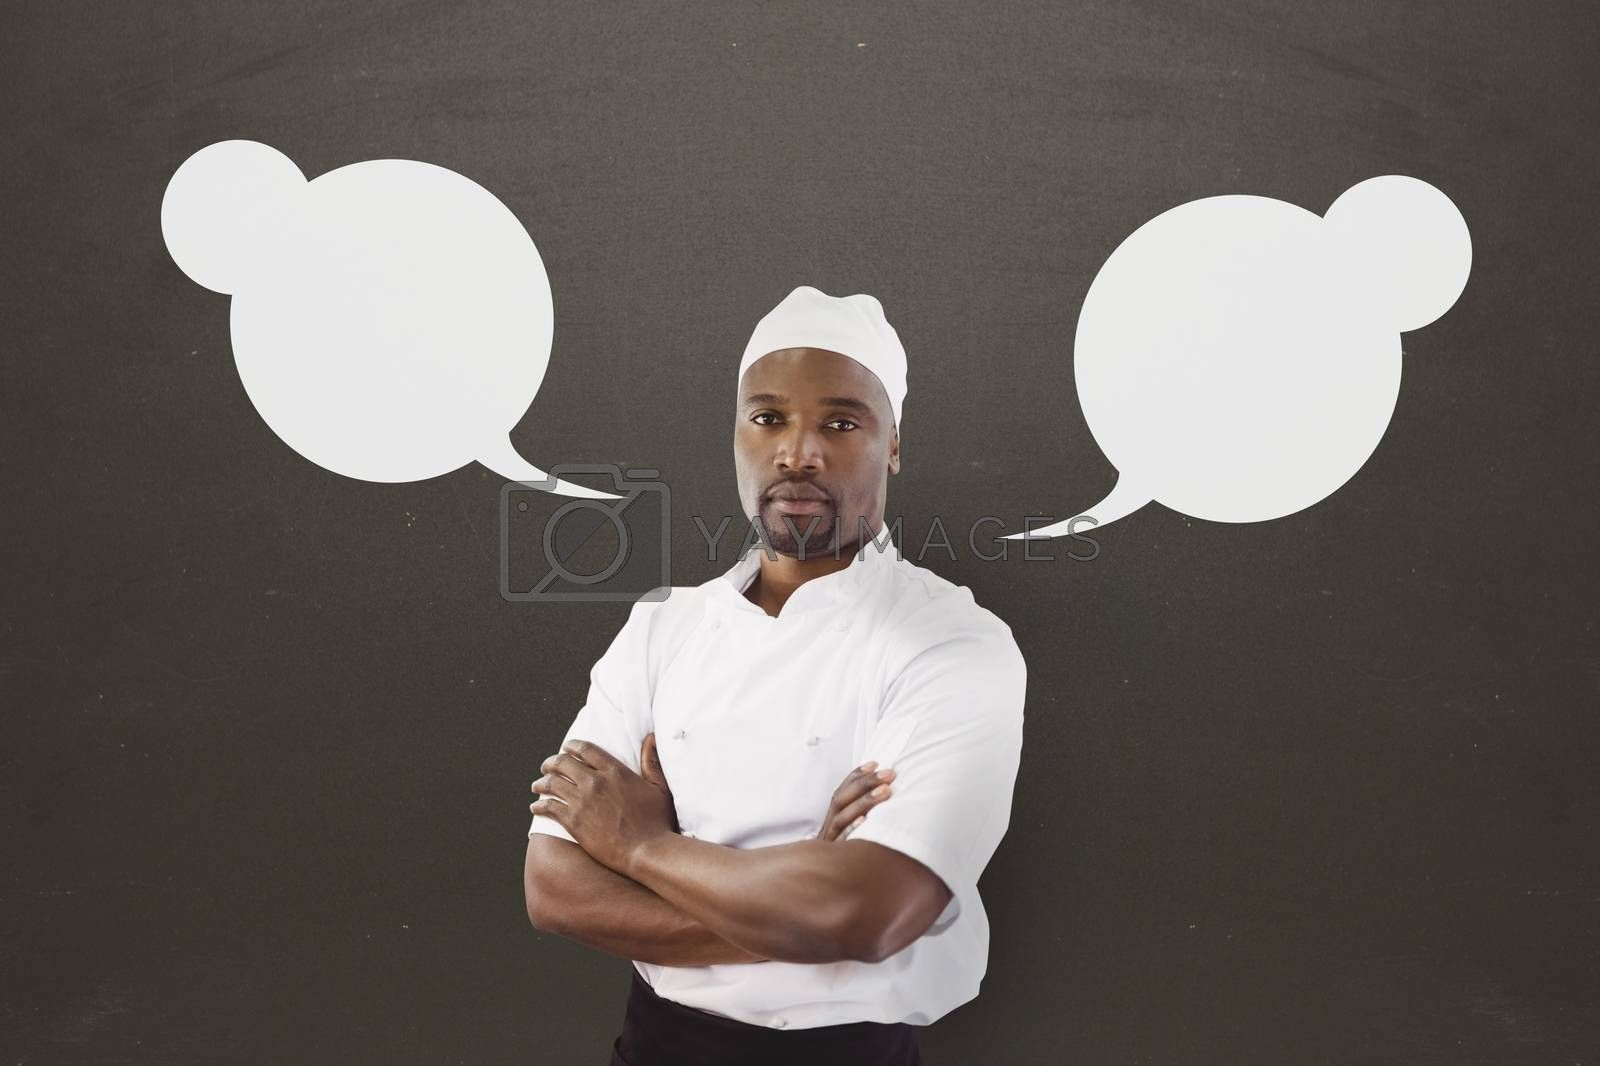 Chef man with speech bubble against grey background by Wavebreakmedia